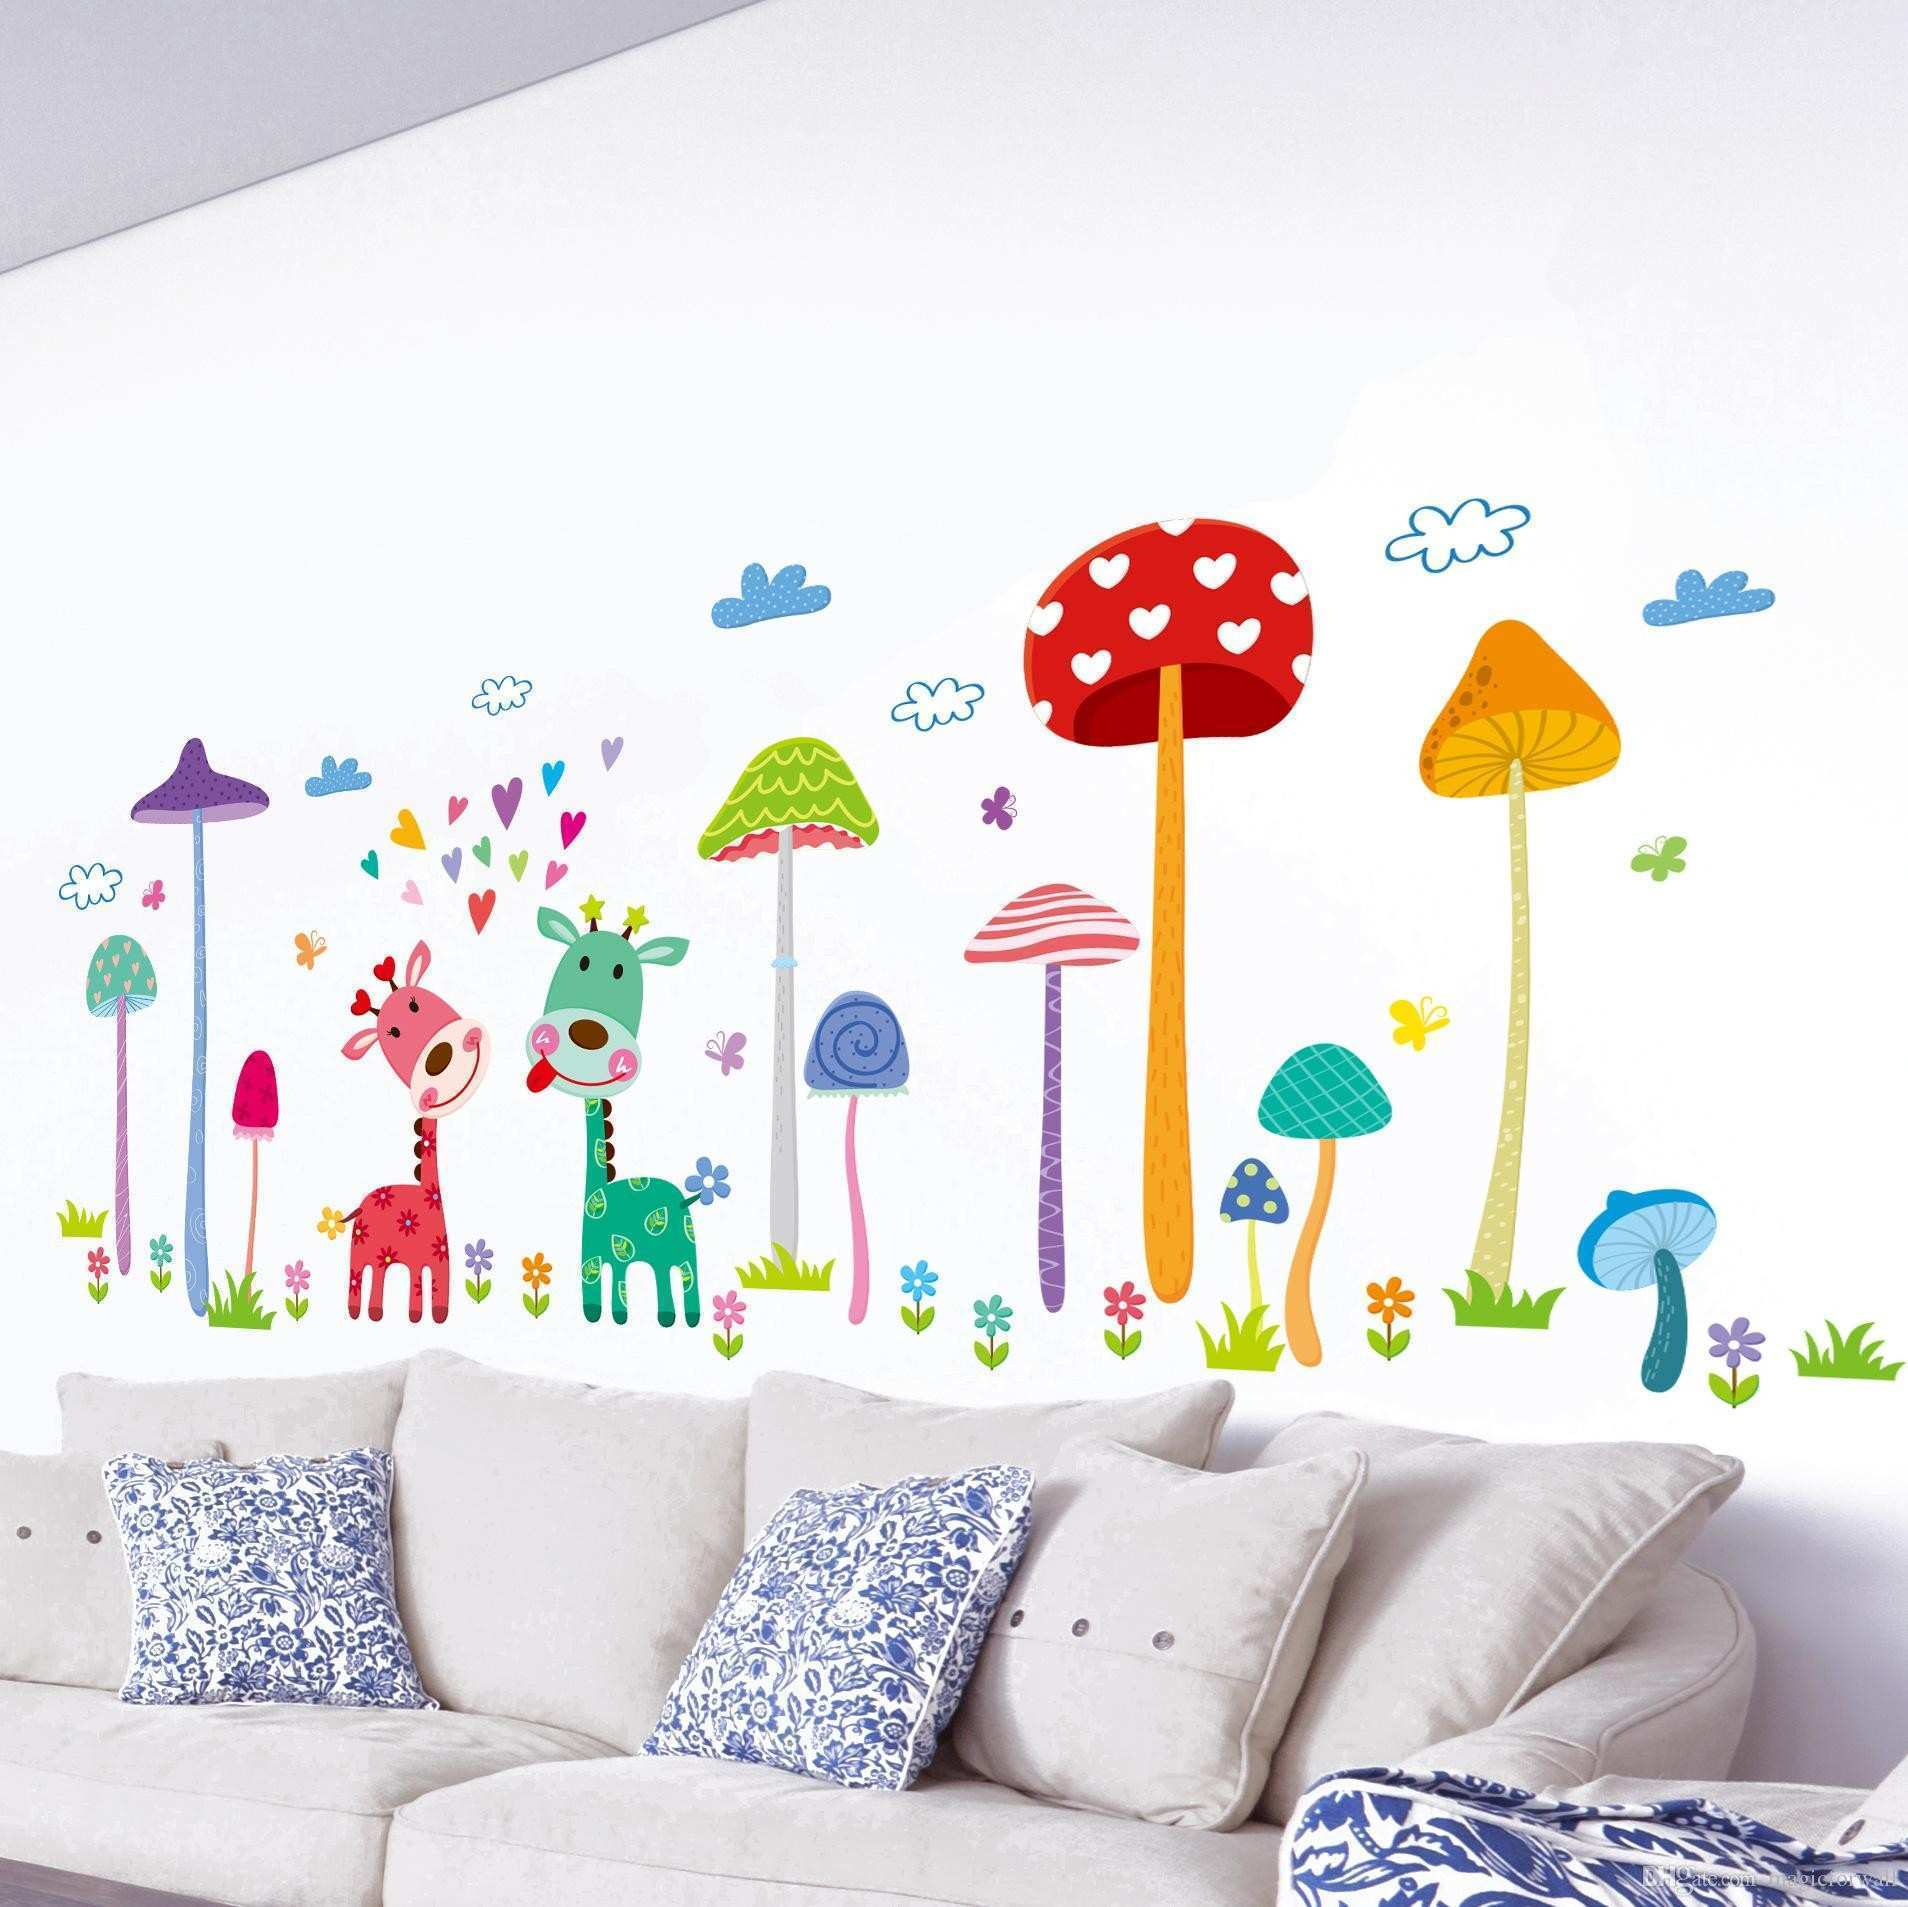 Wall Art Murals Decals Stickers gigadubai